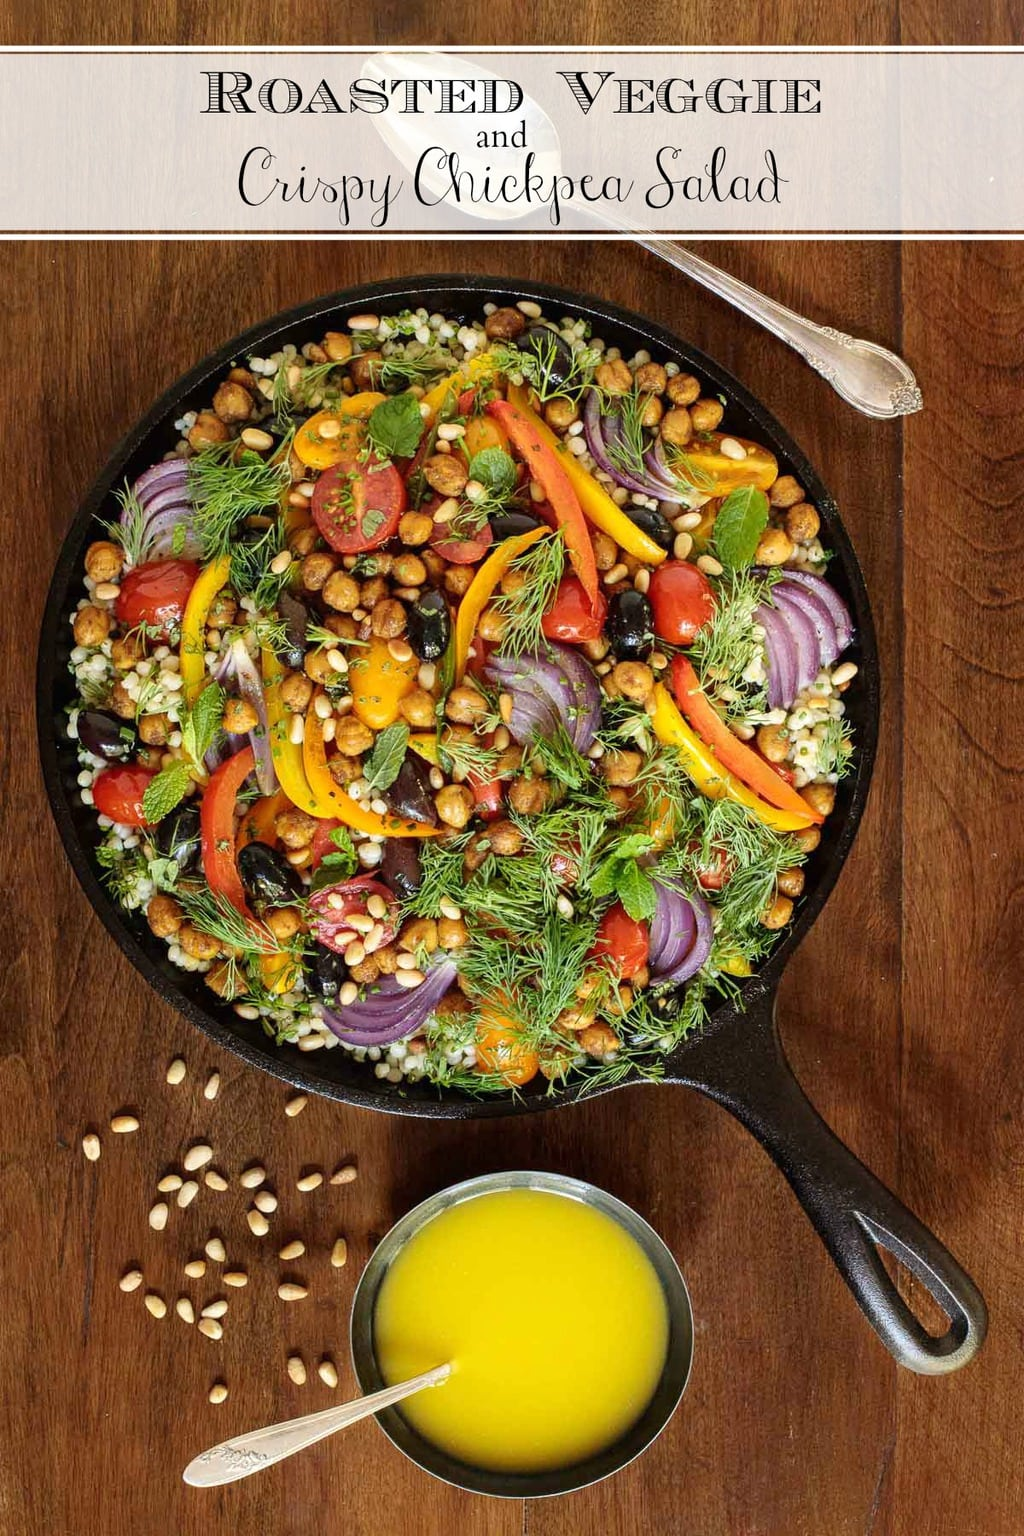 This healthy Roasted Veggie Chickpea Salad combines crispy, spiced chickpeas, caramelized veggies, Israeli couscous and lots of fresh herbs for a delicious side or main course! #roastedveggiesalad, #crispychickpeas, #fallsalad, #israelicouscoussalad